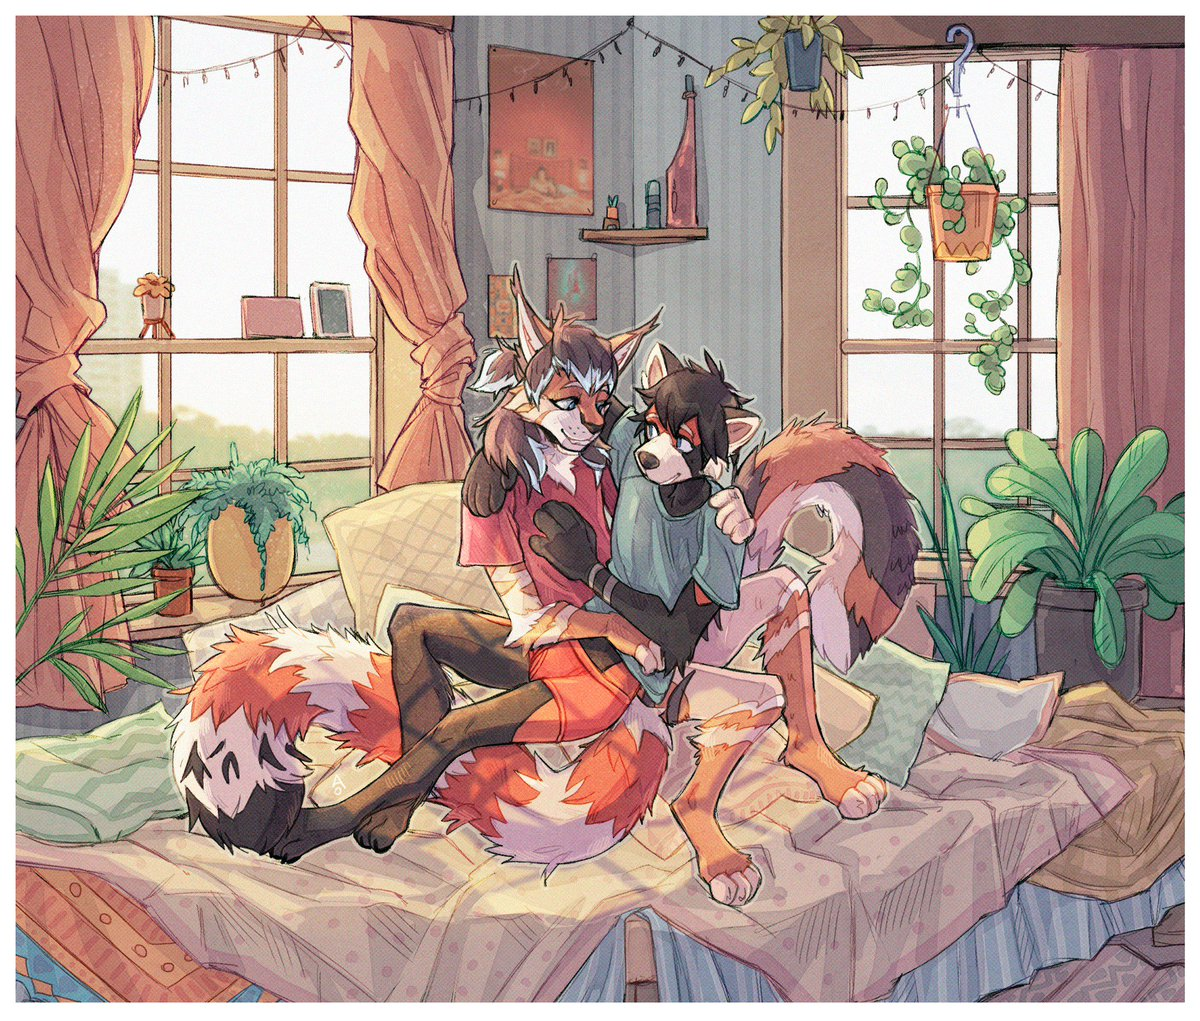 Here is a big piece commissioned by @knifelicker  I looove drawing cozy interiors with a lot of plants!   #furry #furryart<br>http://pic.twitter.com/Jo1sqlWbx3